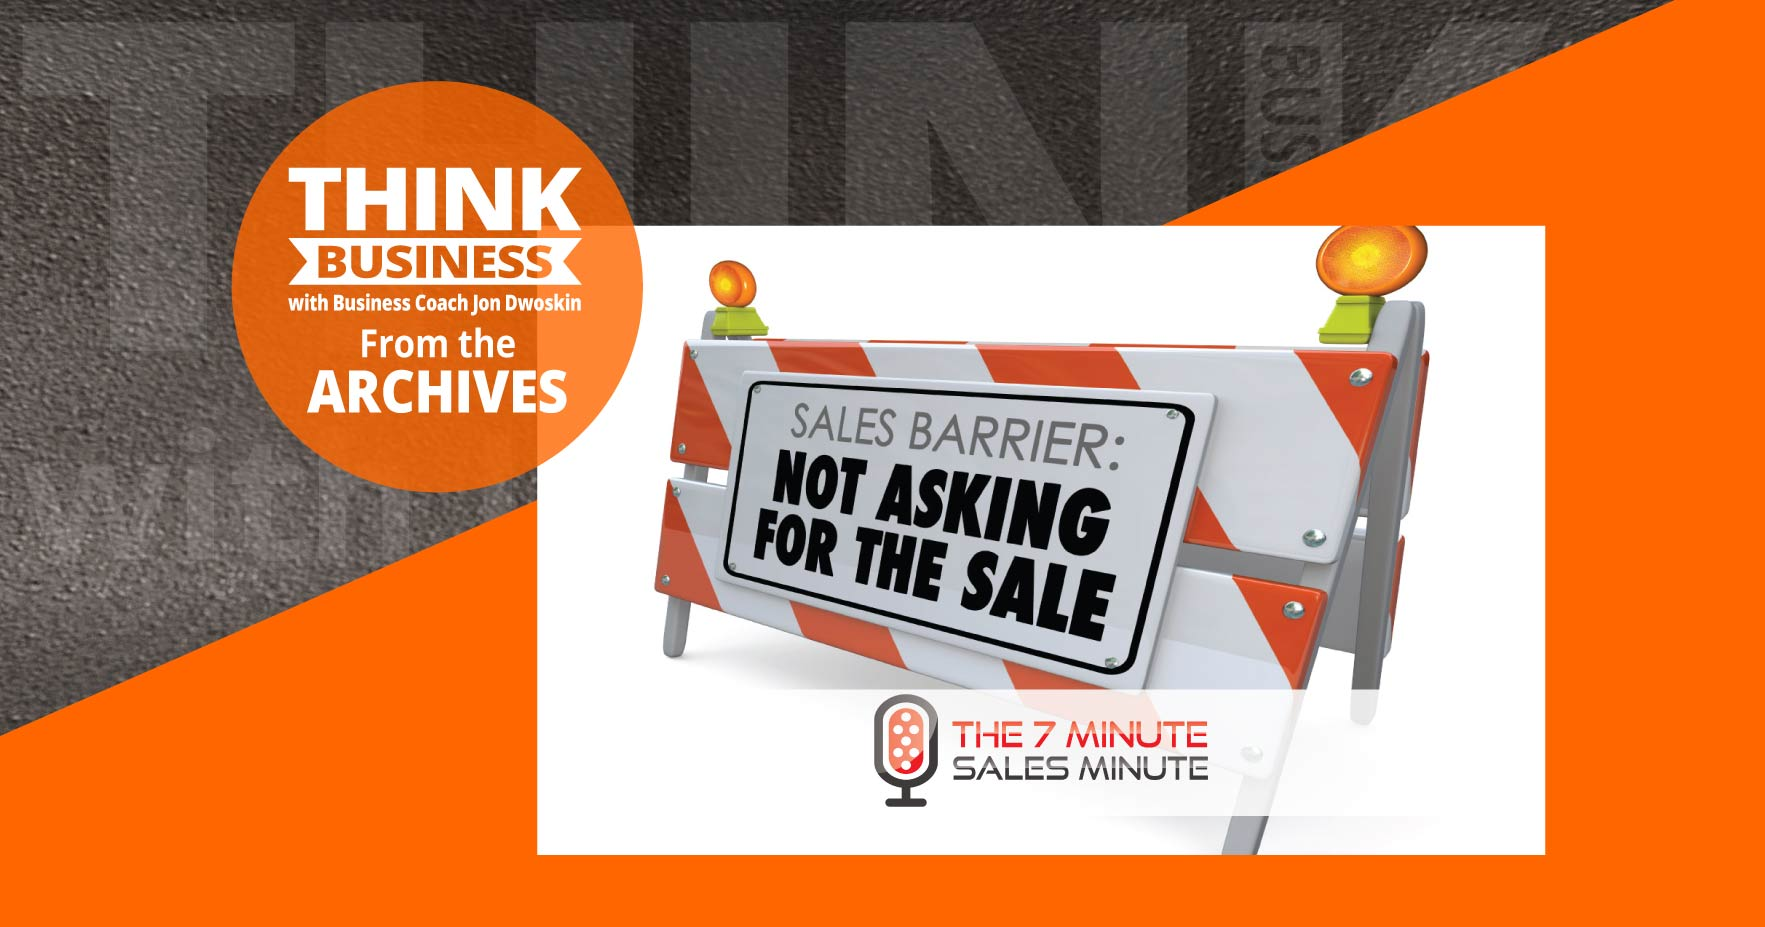 THINK Business Podcast: Double Your Sales, Double Your Asks